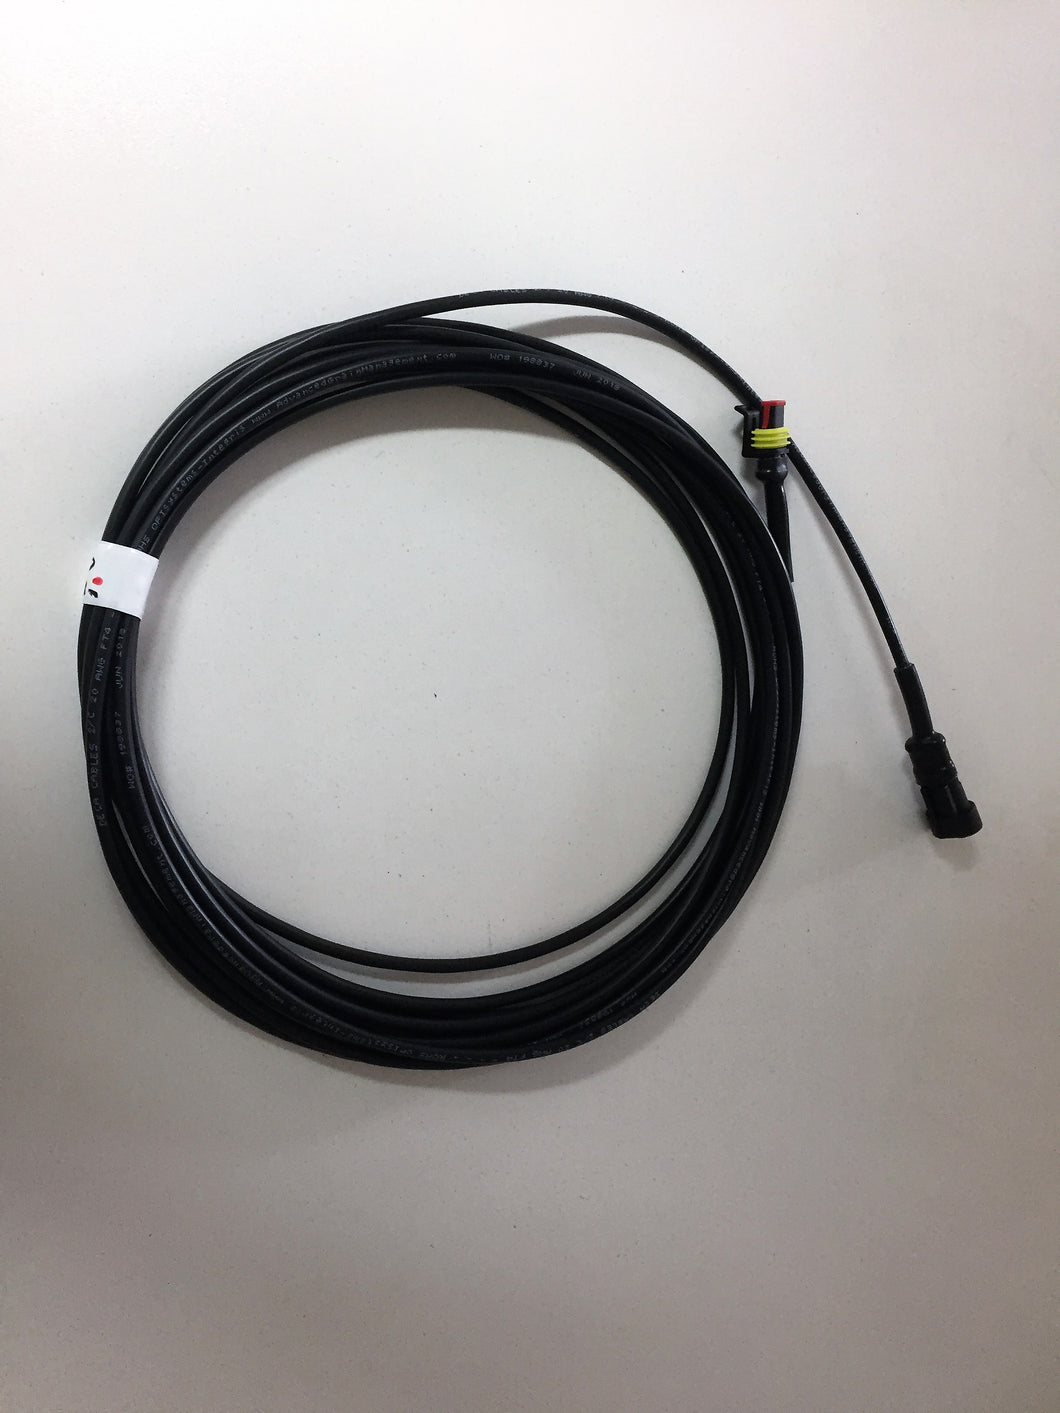 25' Connector Cable